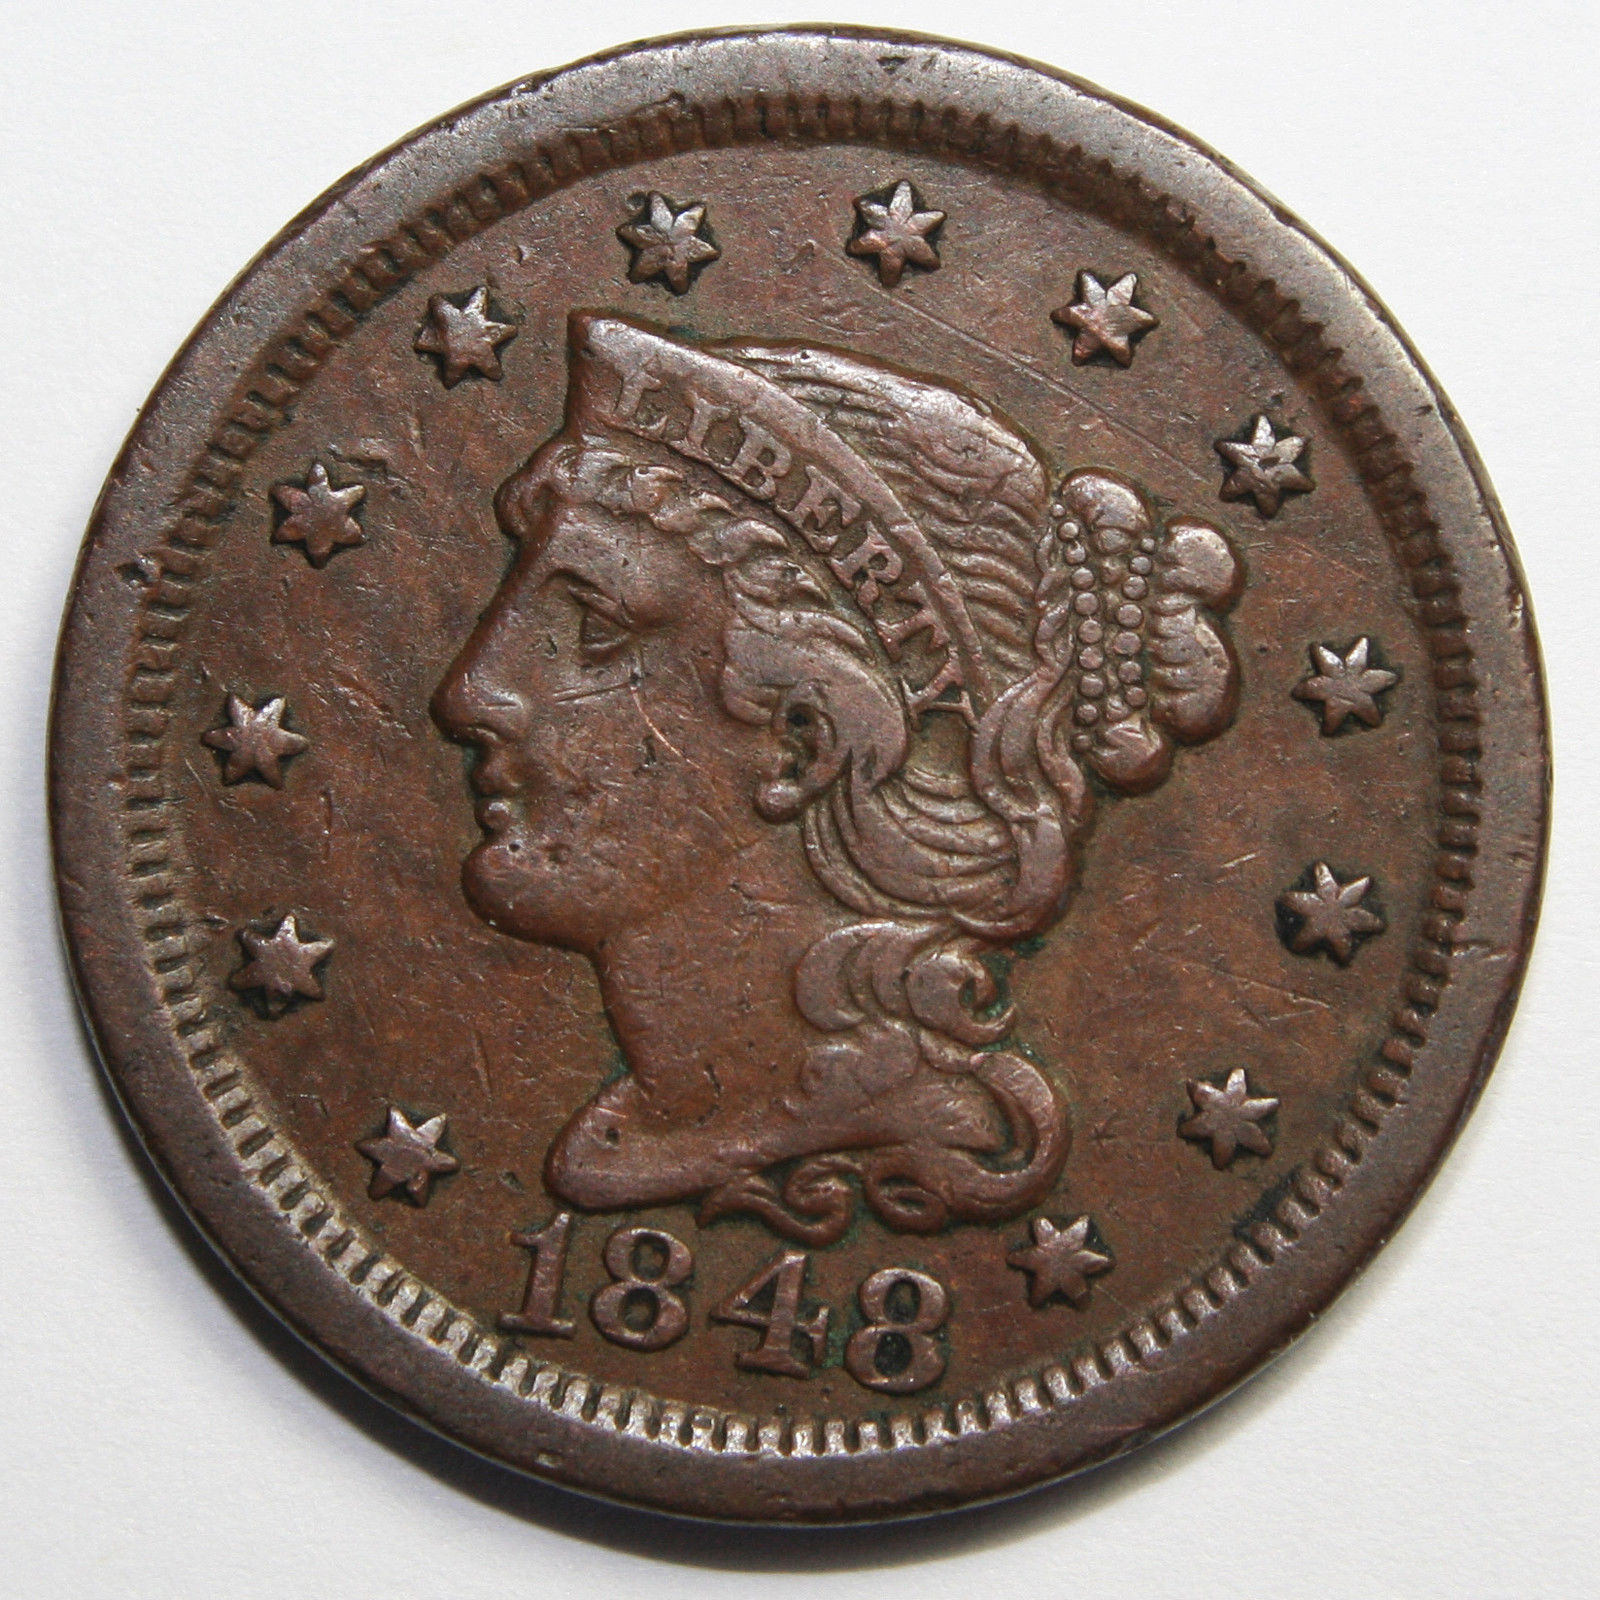 1848 Large Cent Liberty Braided Hair Head Coin Lot # MZ 4097